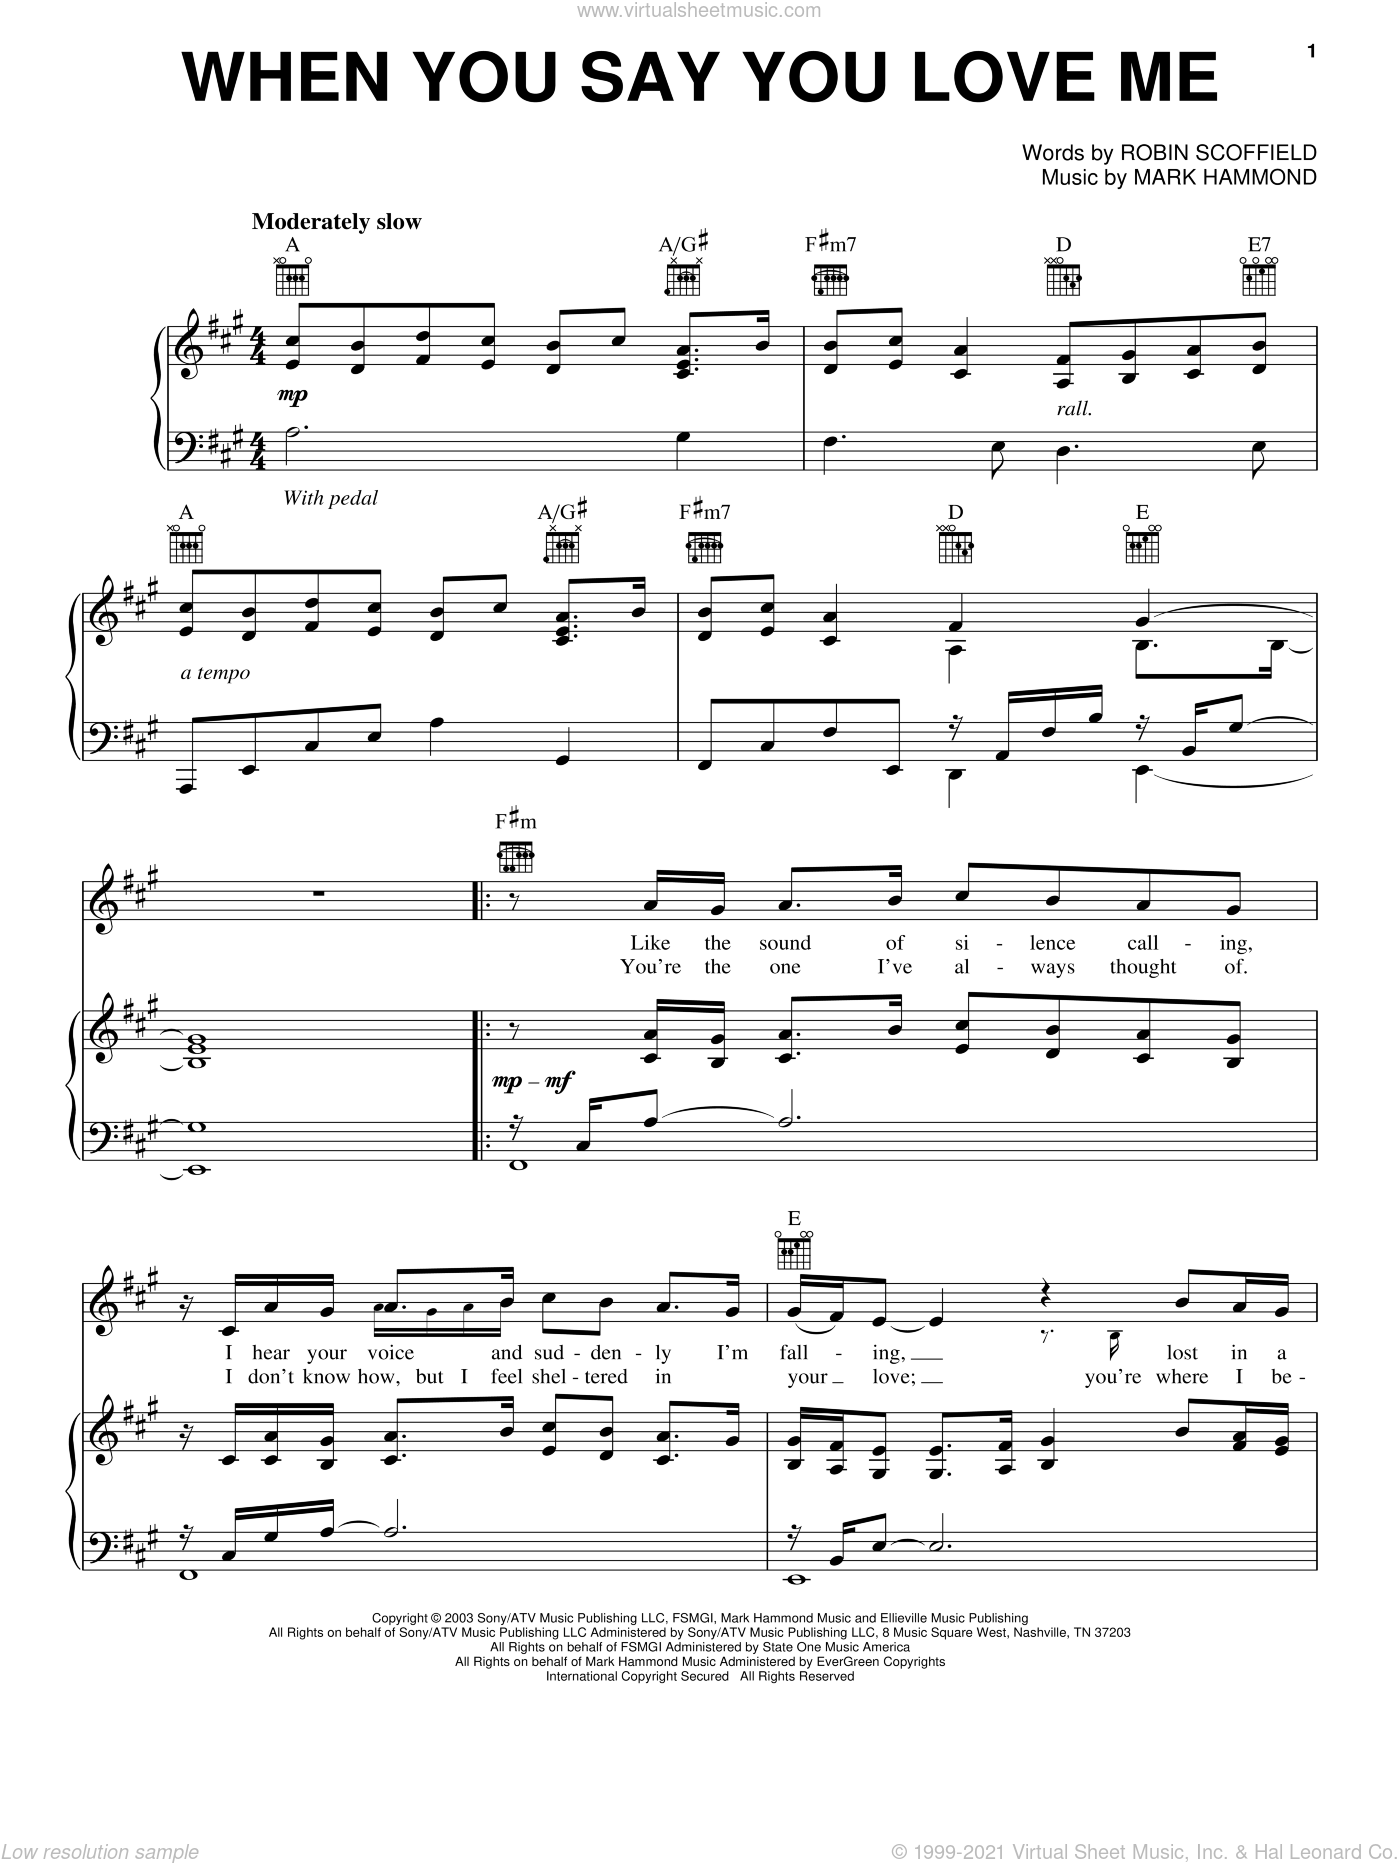 When You Say You Love Me sheet music for voice, piano or guitar by Robin Scoffield